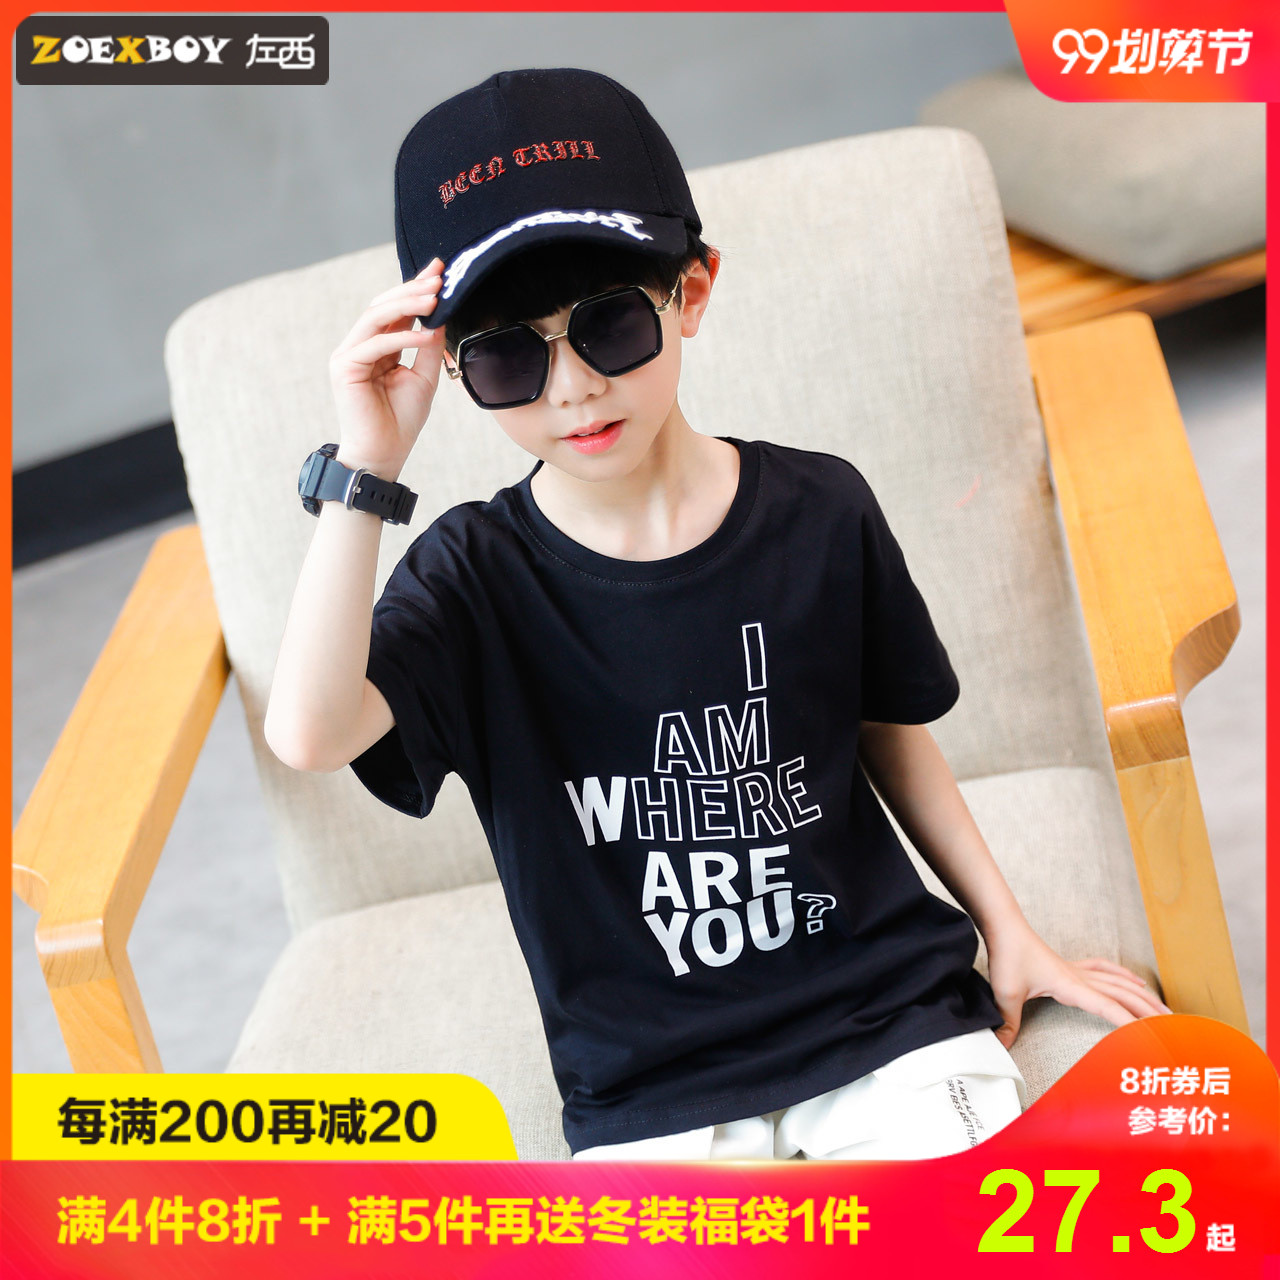 Left West boys summer short-sleeved T-shirt 2019 New children cotton shirt black in the big boy quick-drying Korean version of the tide